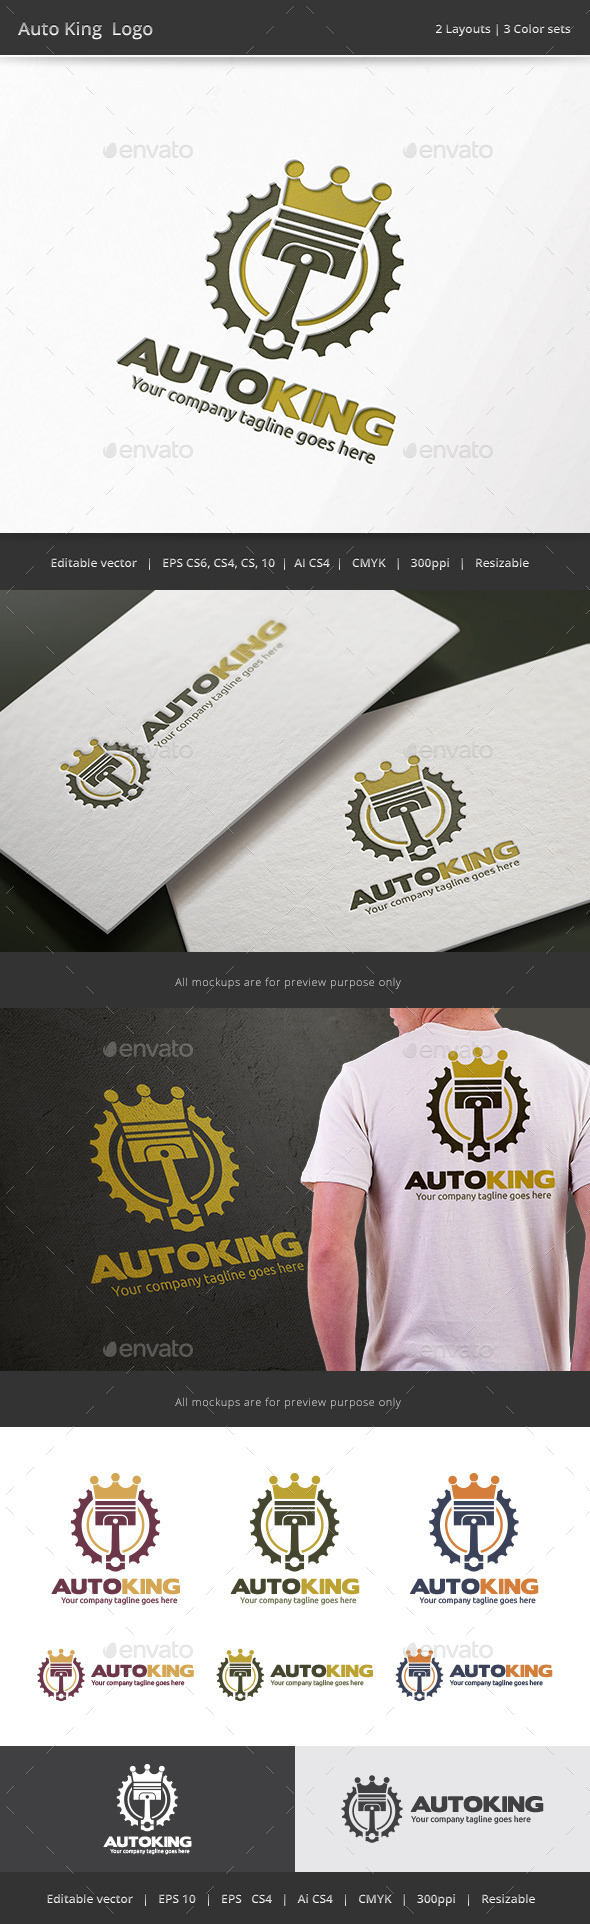 Auto King Piston Logo - Objects Logo Templates